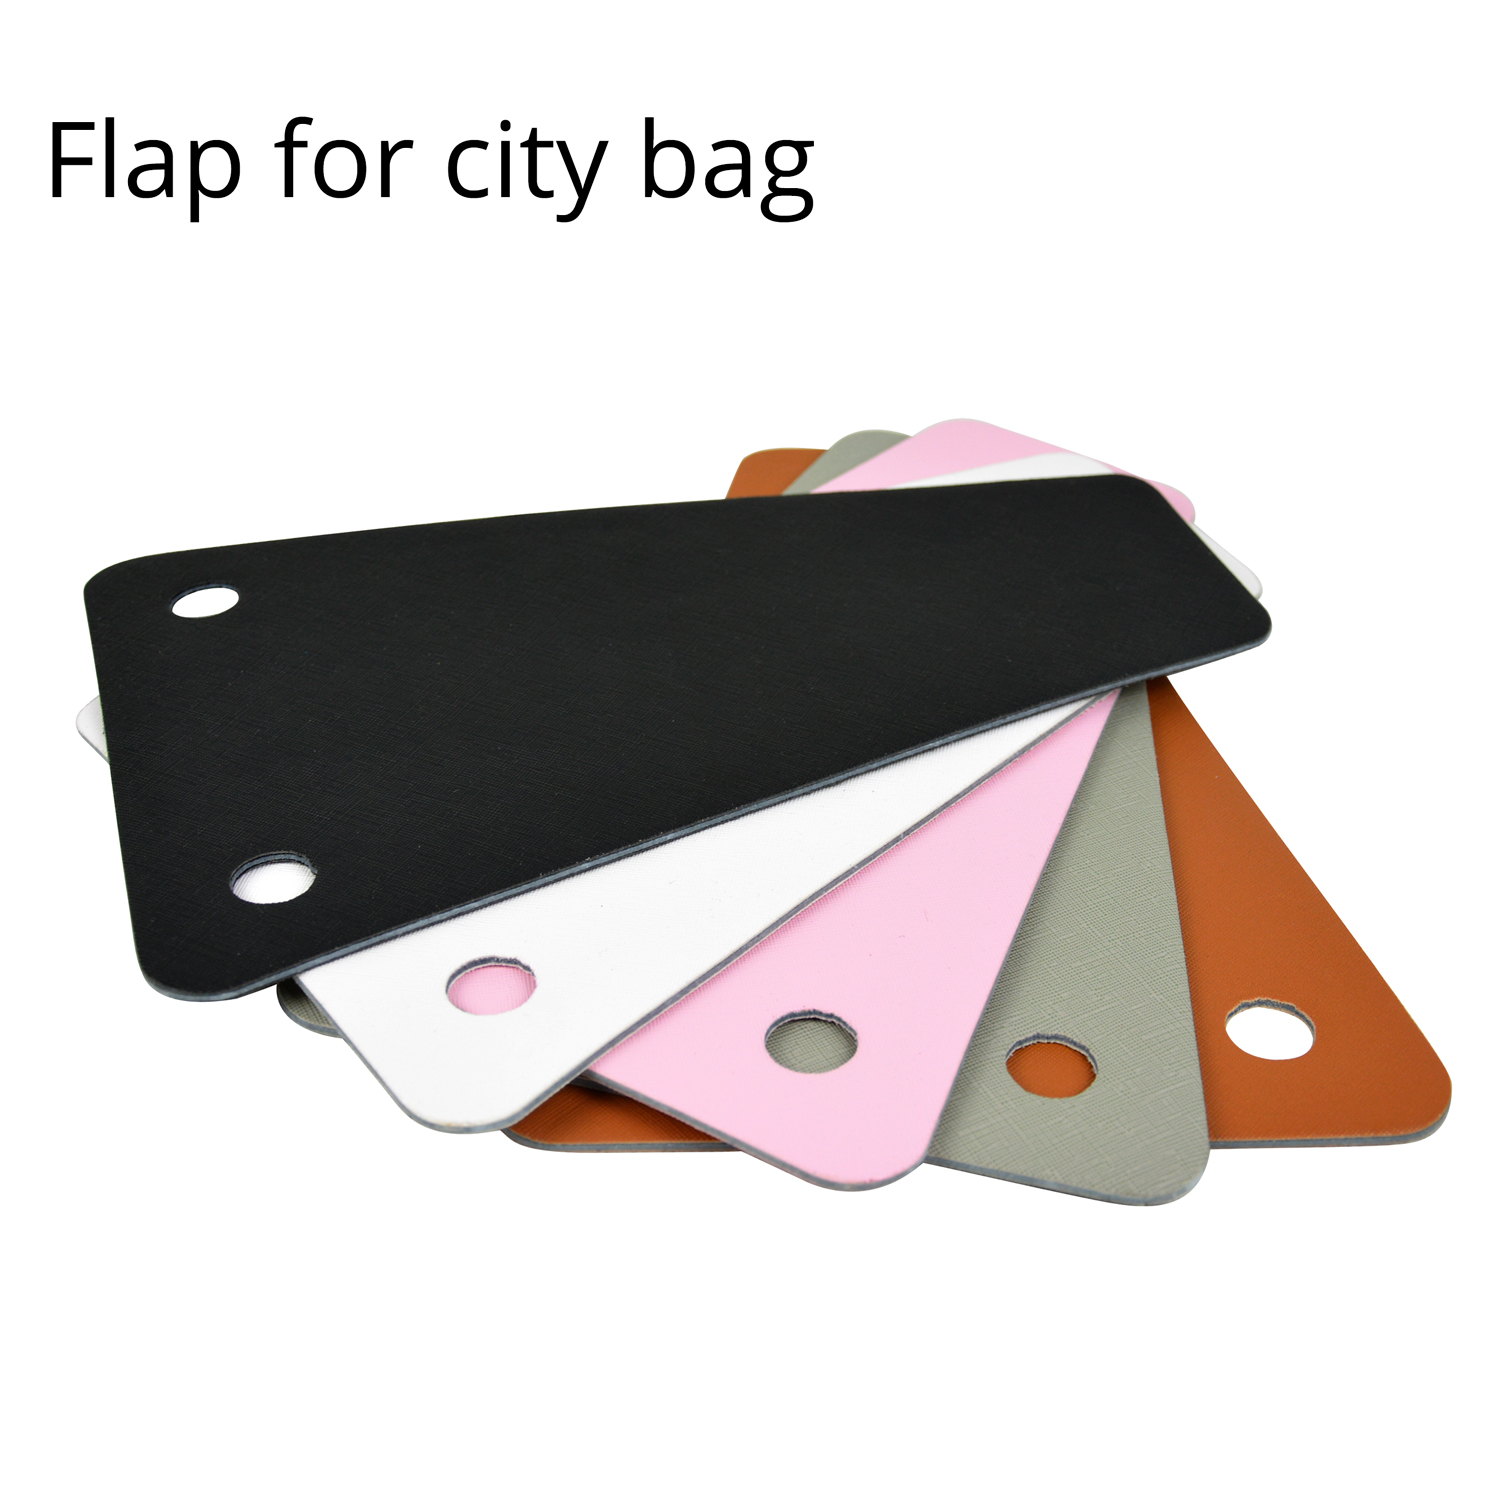 Faux Leather Replacement Flap With Matching Band Interlocking Top Accessory For O City Bag Obag Bag Accessories